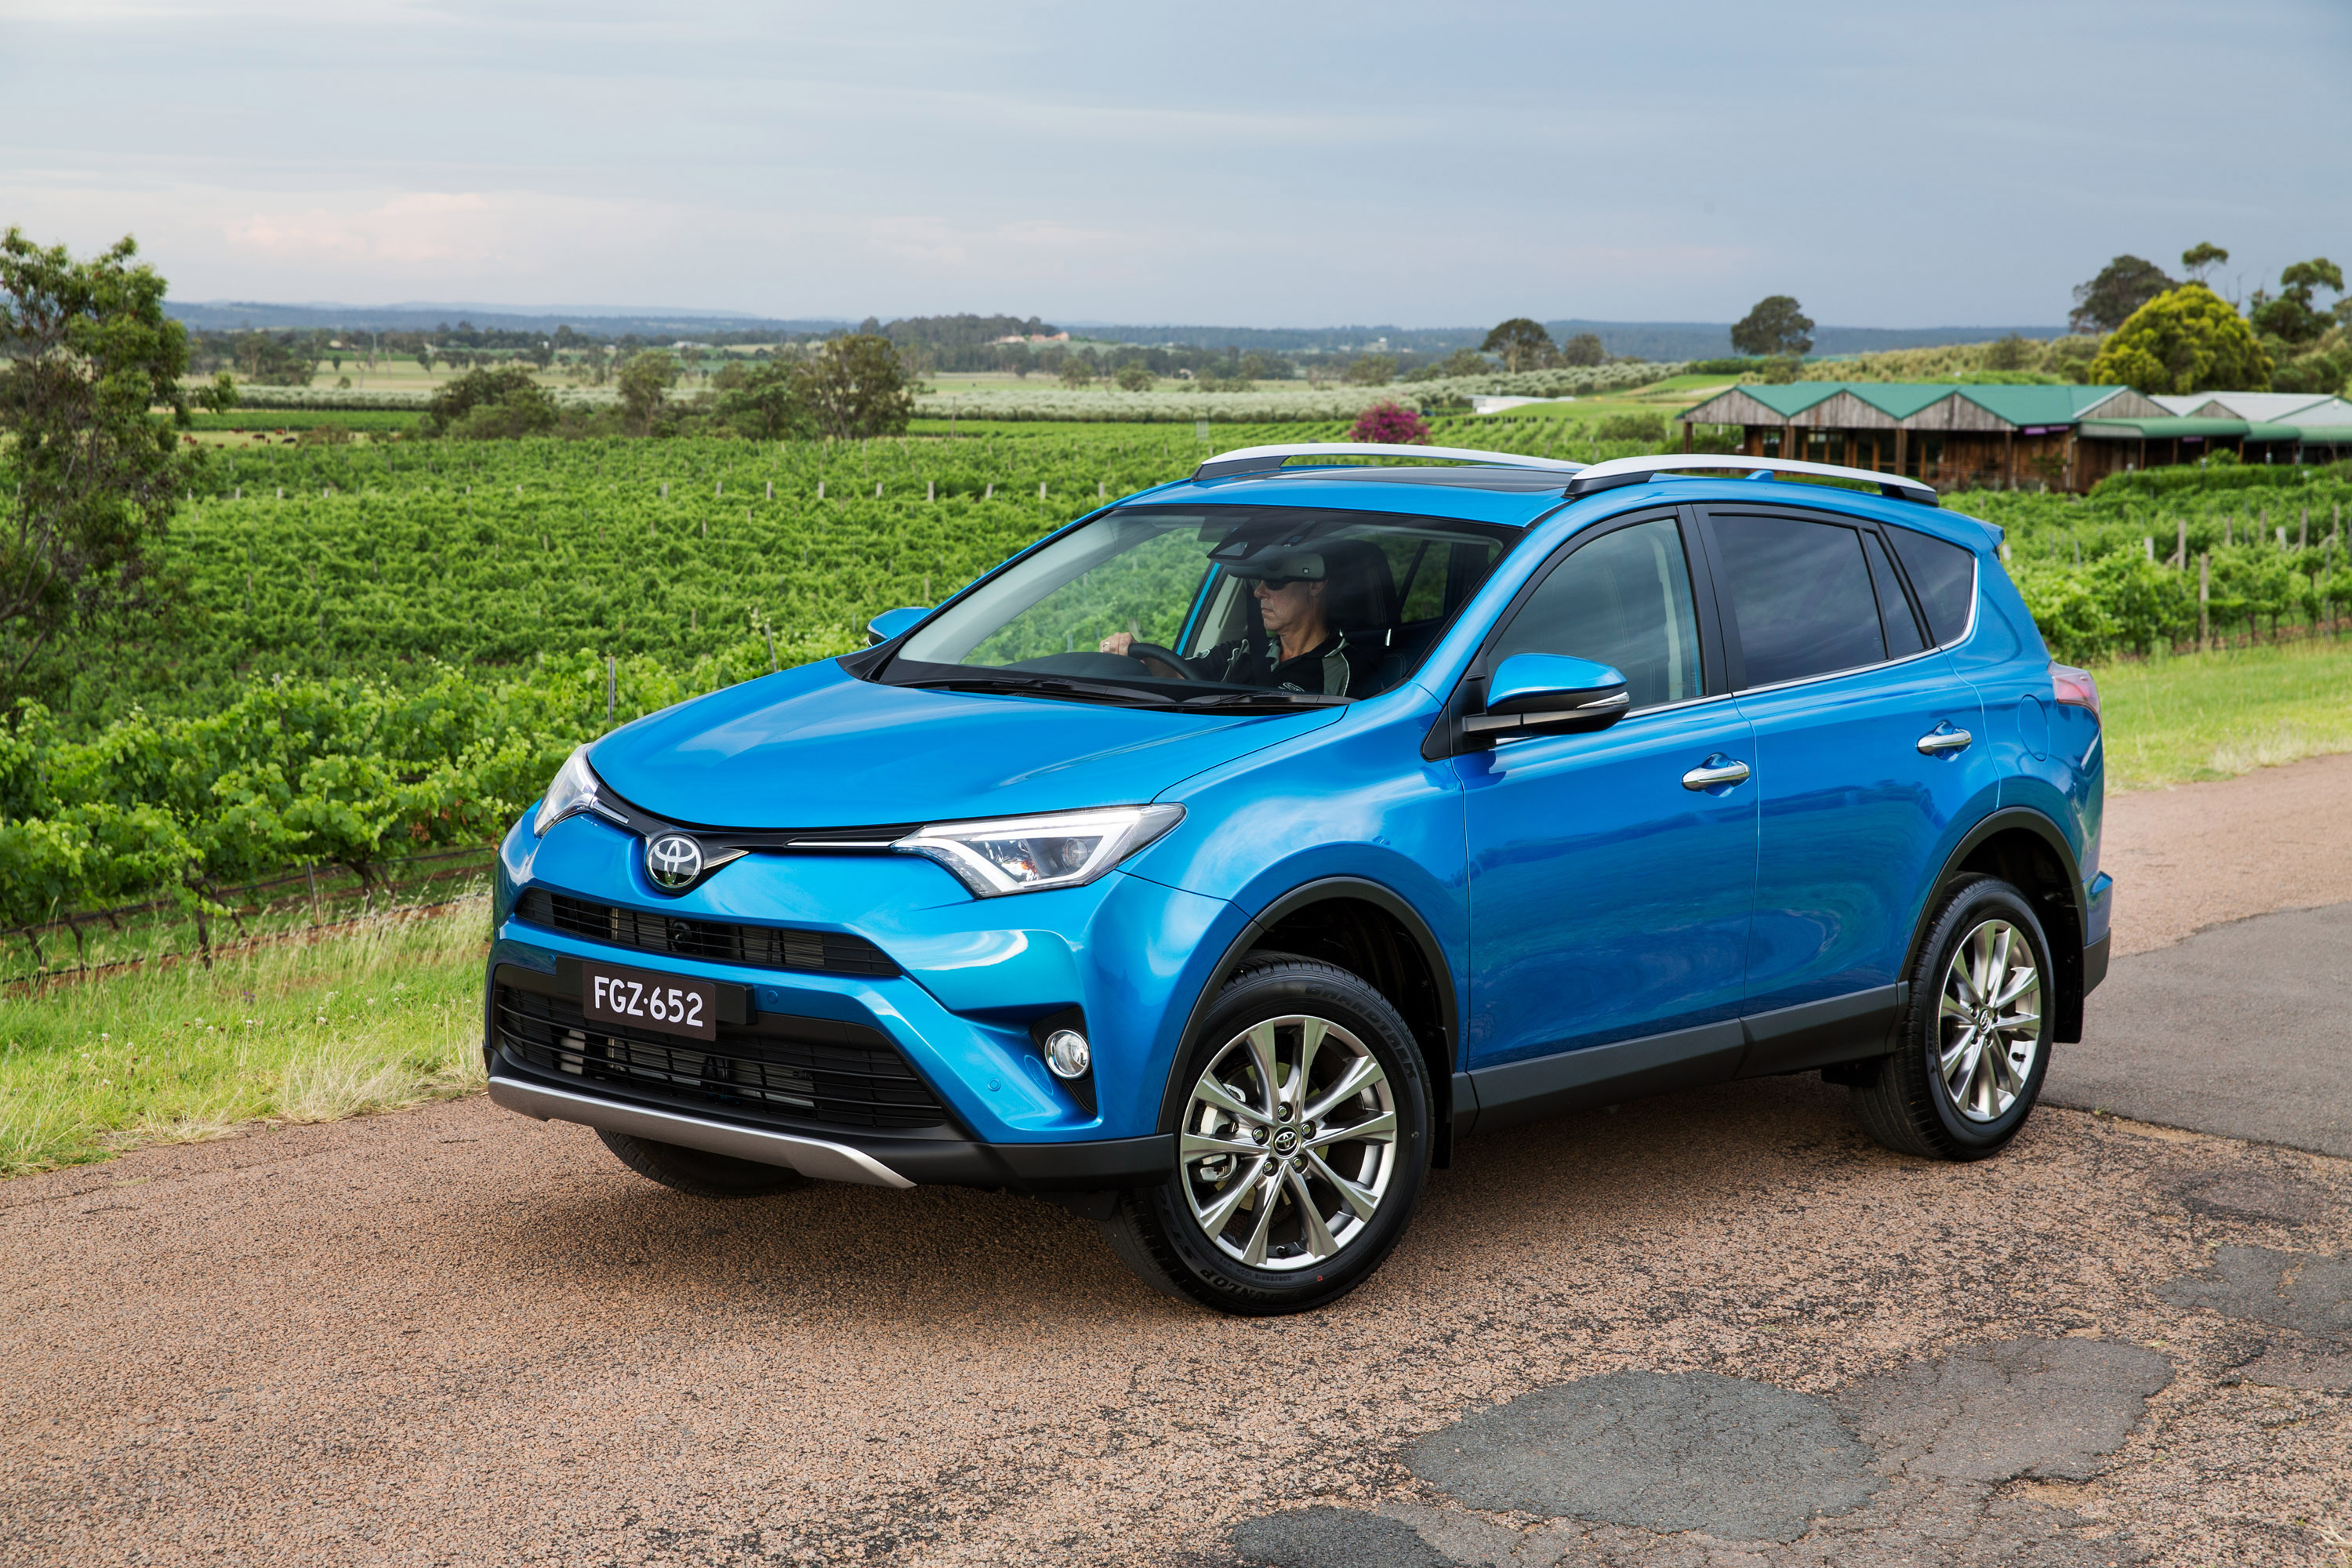 Toyota Introduces Rav4 Facelift For My2015